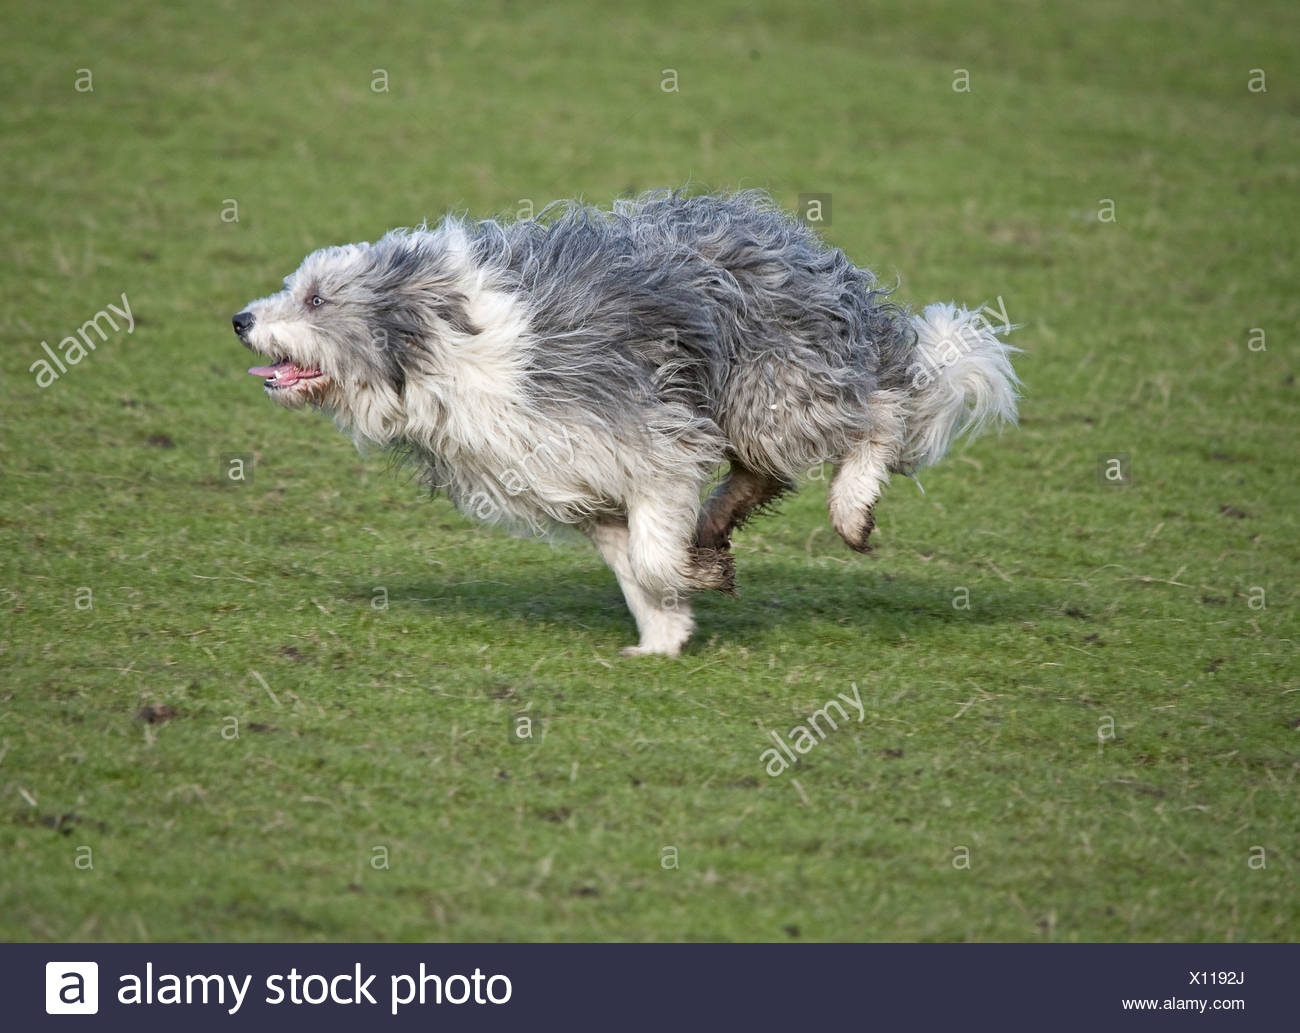 Domestic Dog Bearded Collie adult running England - Stock Image